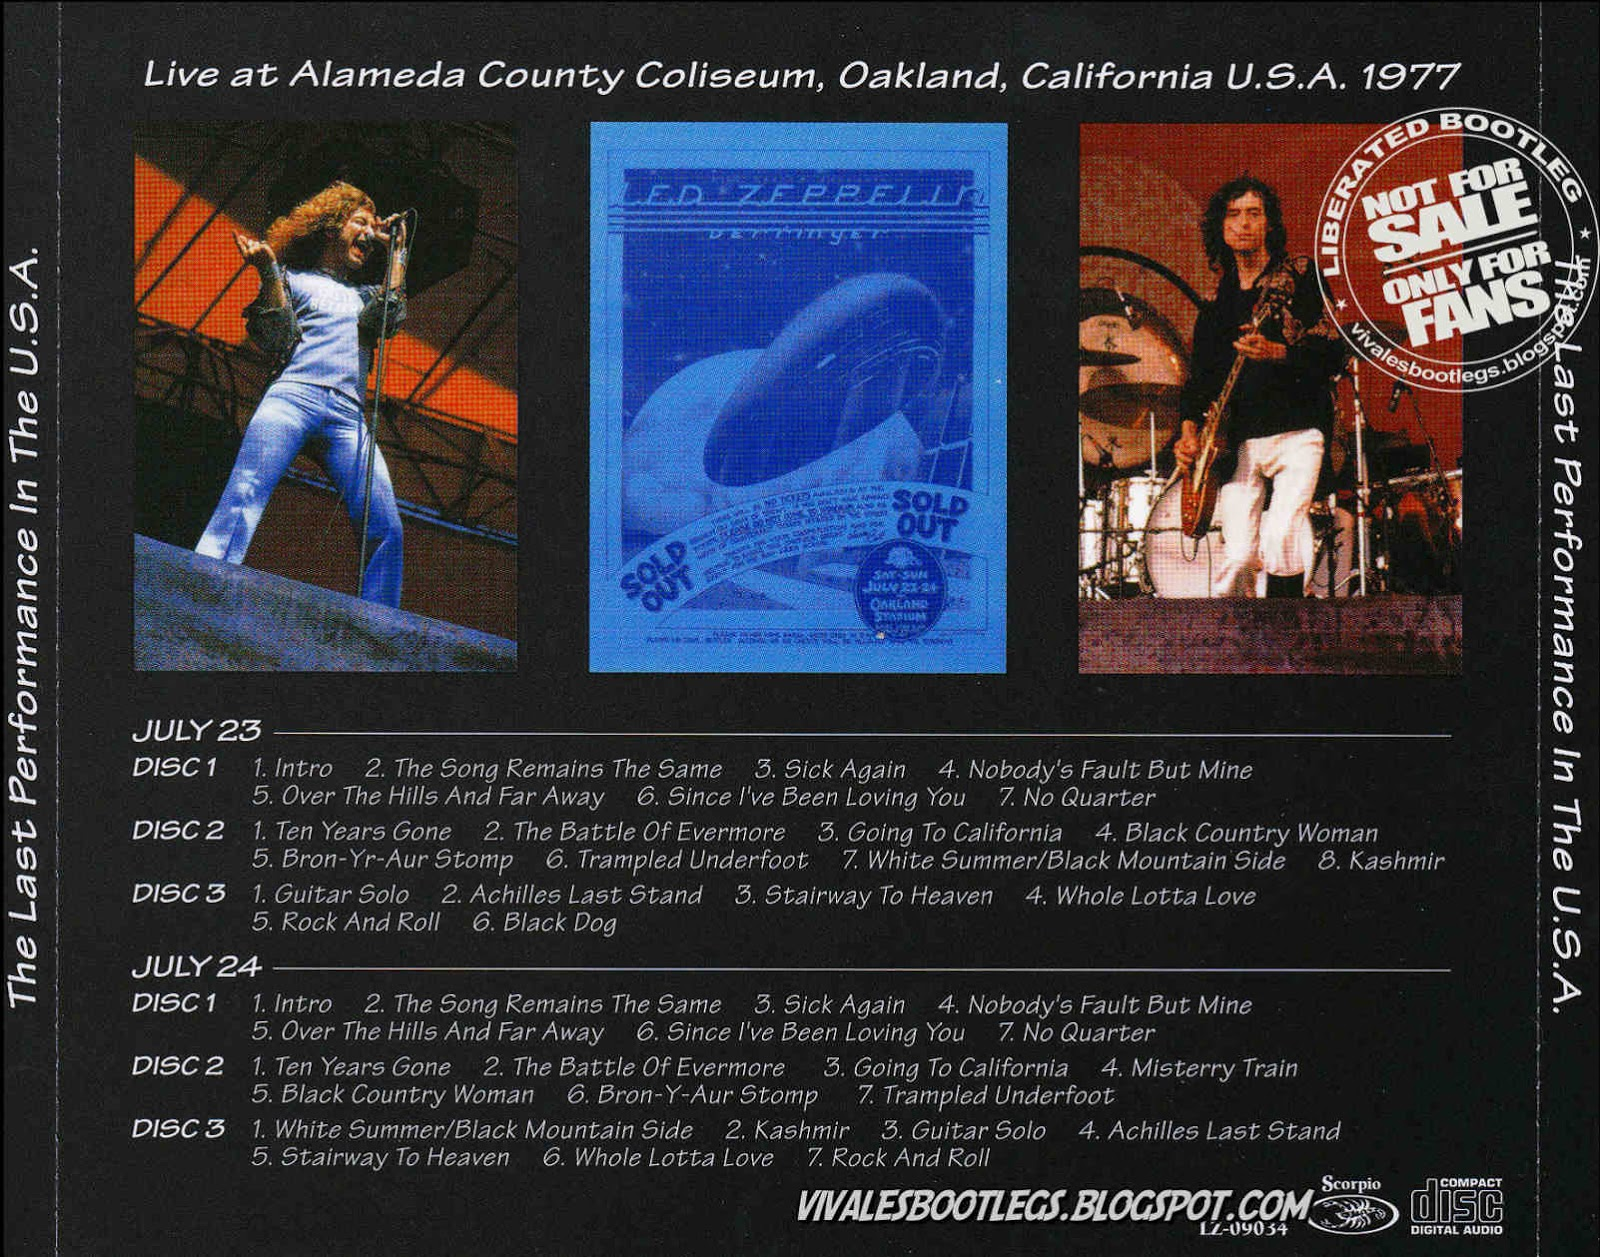 Led Zeppelin: The Last Performance In USA. Alameda County ...